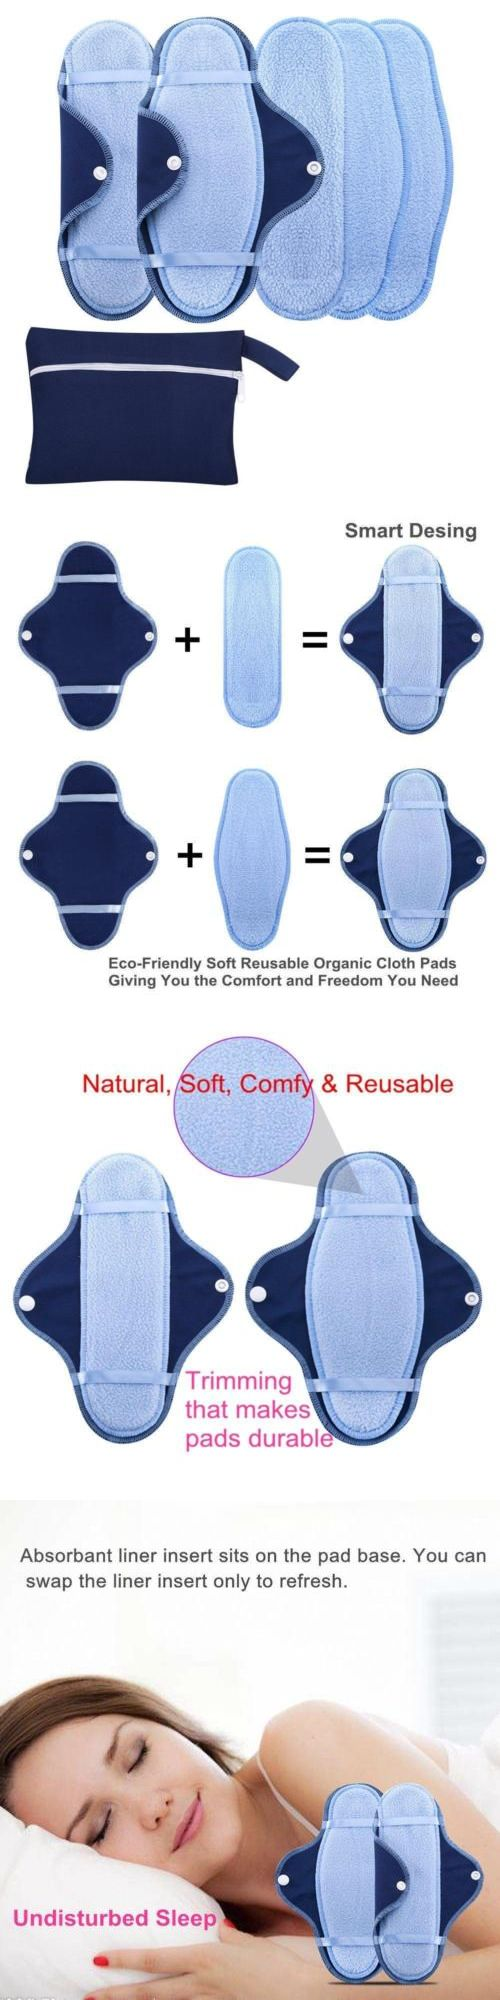 Pantiliners: Reusable Natural Sanitary Napkins,Cotton Cloth Menstrual Maxi Pads Sets 2... -> BUY IT NOW ONLY: $37.26 on eBay!